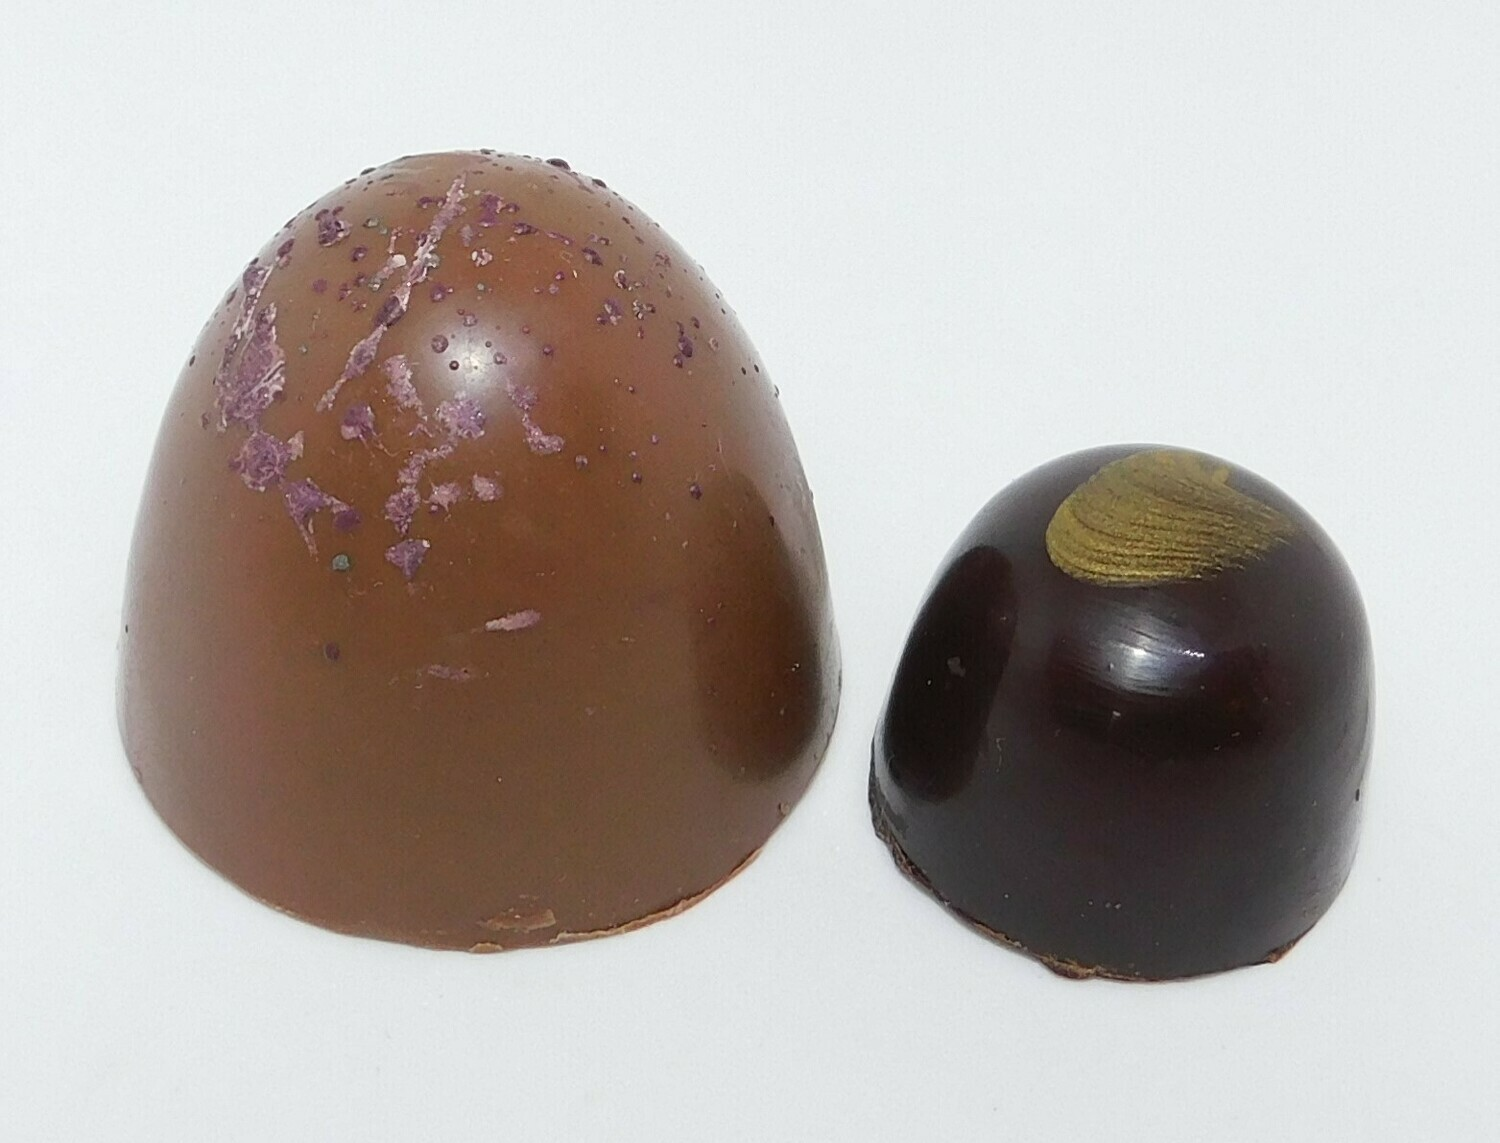 Extra Large Truffle - 1 pc